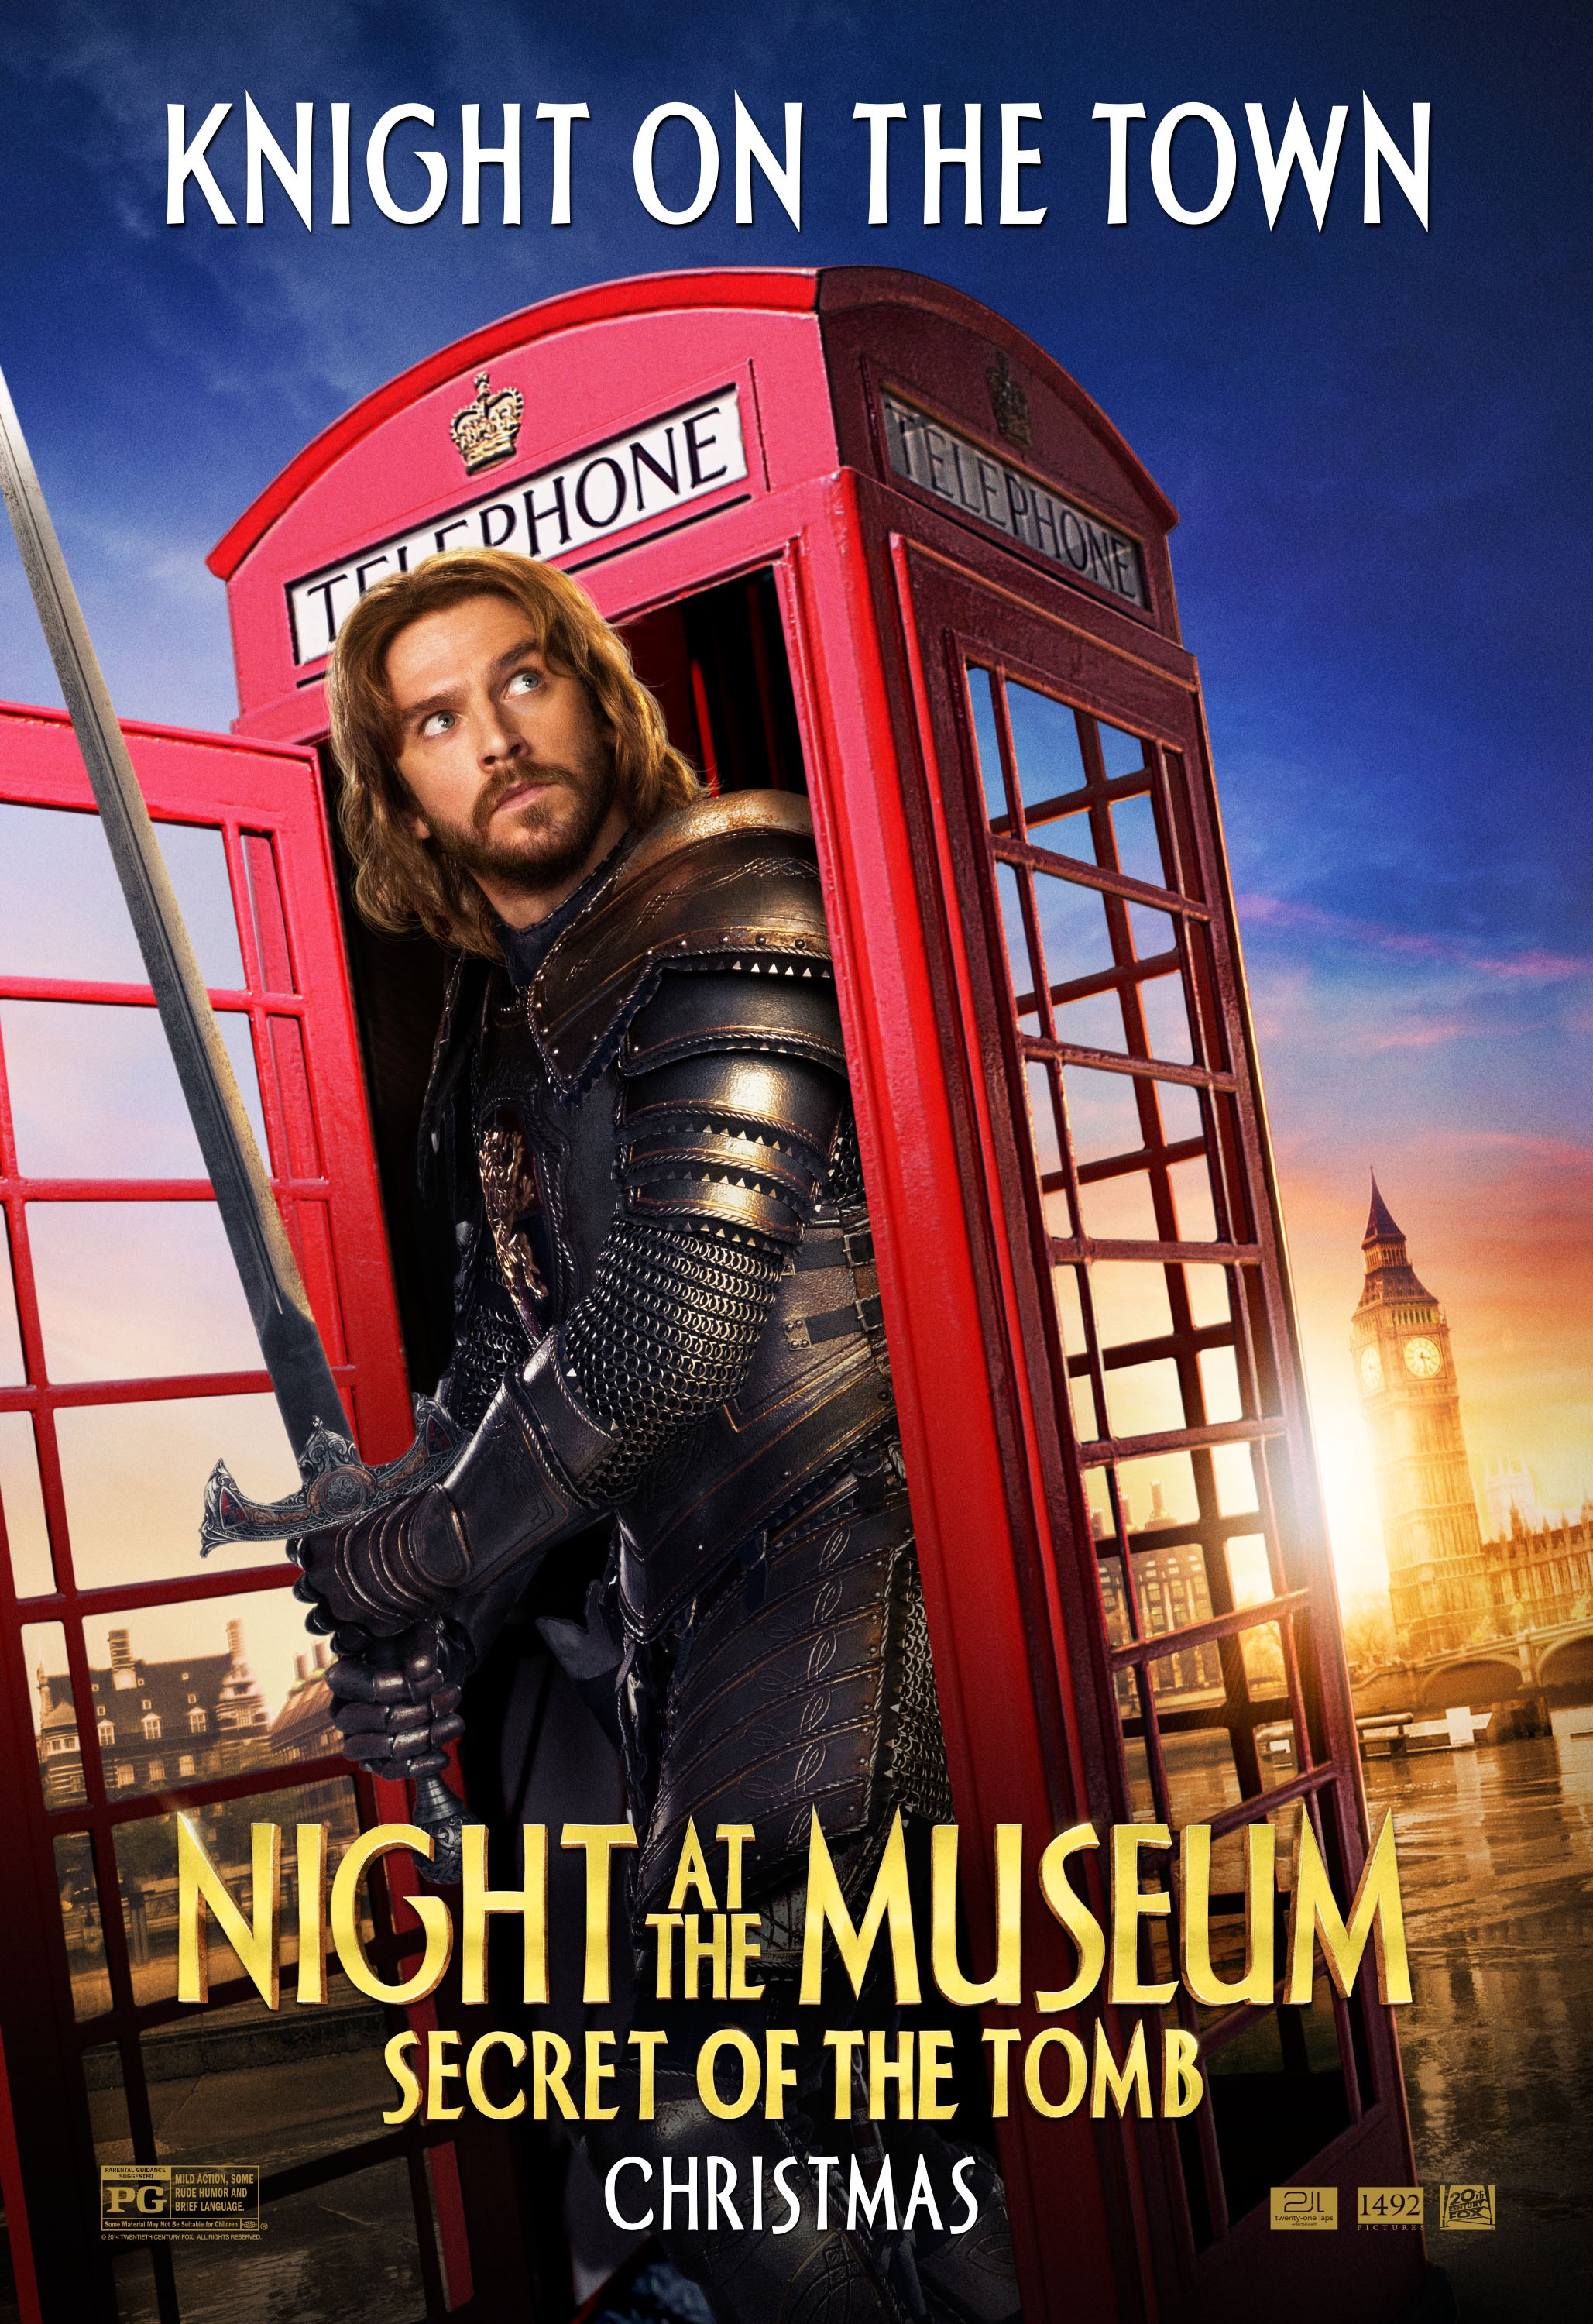 Night at the Museum Secret of the Tomb-PROMO CHAR-21NOVEMBRO2014-02